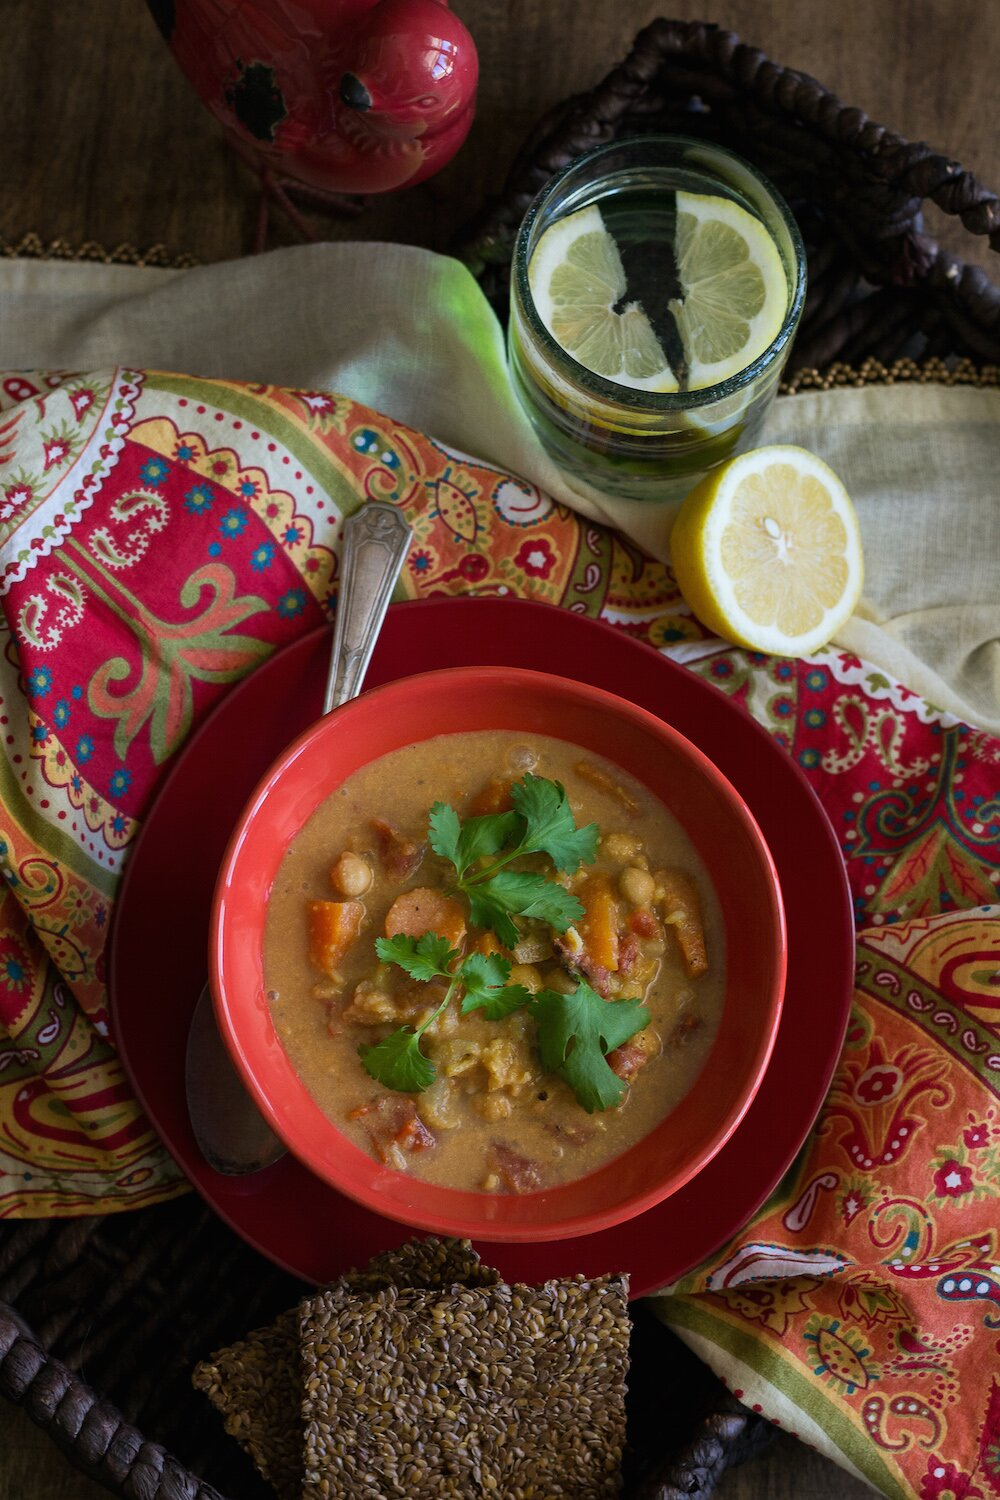 Spicy Chickpea & Brown Rice Soup